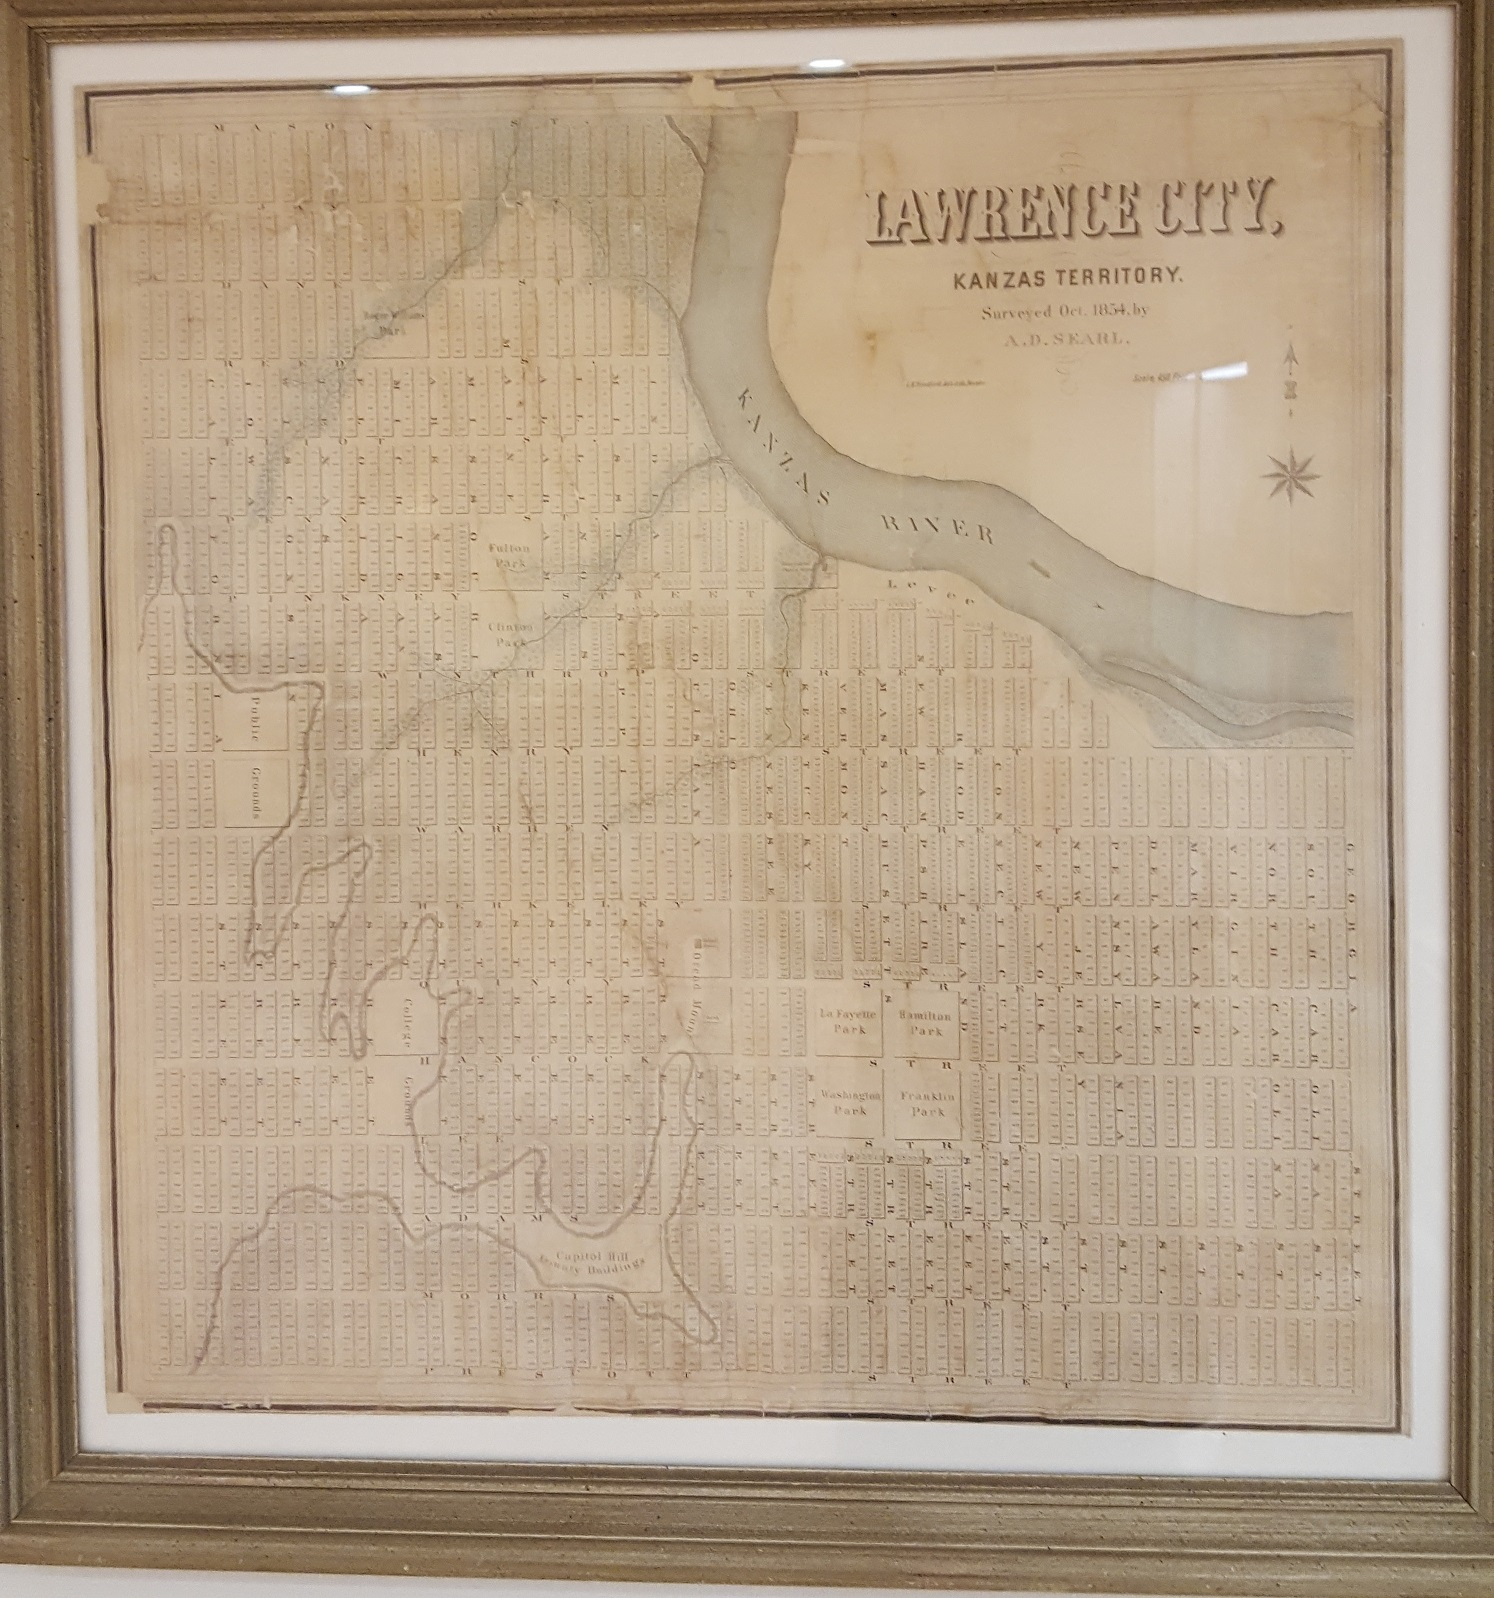 Picture of the 1854 SearleMap of Lawrence housed in the Spencer Research Library Lobby